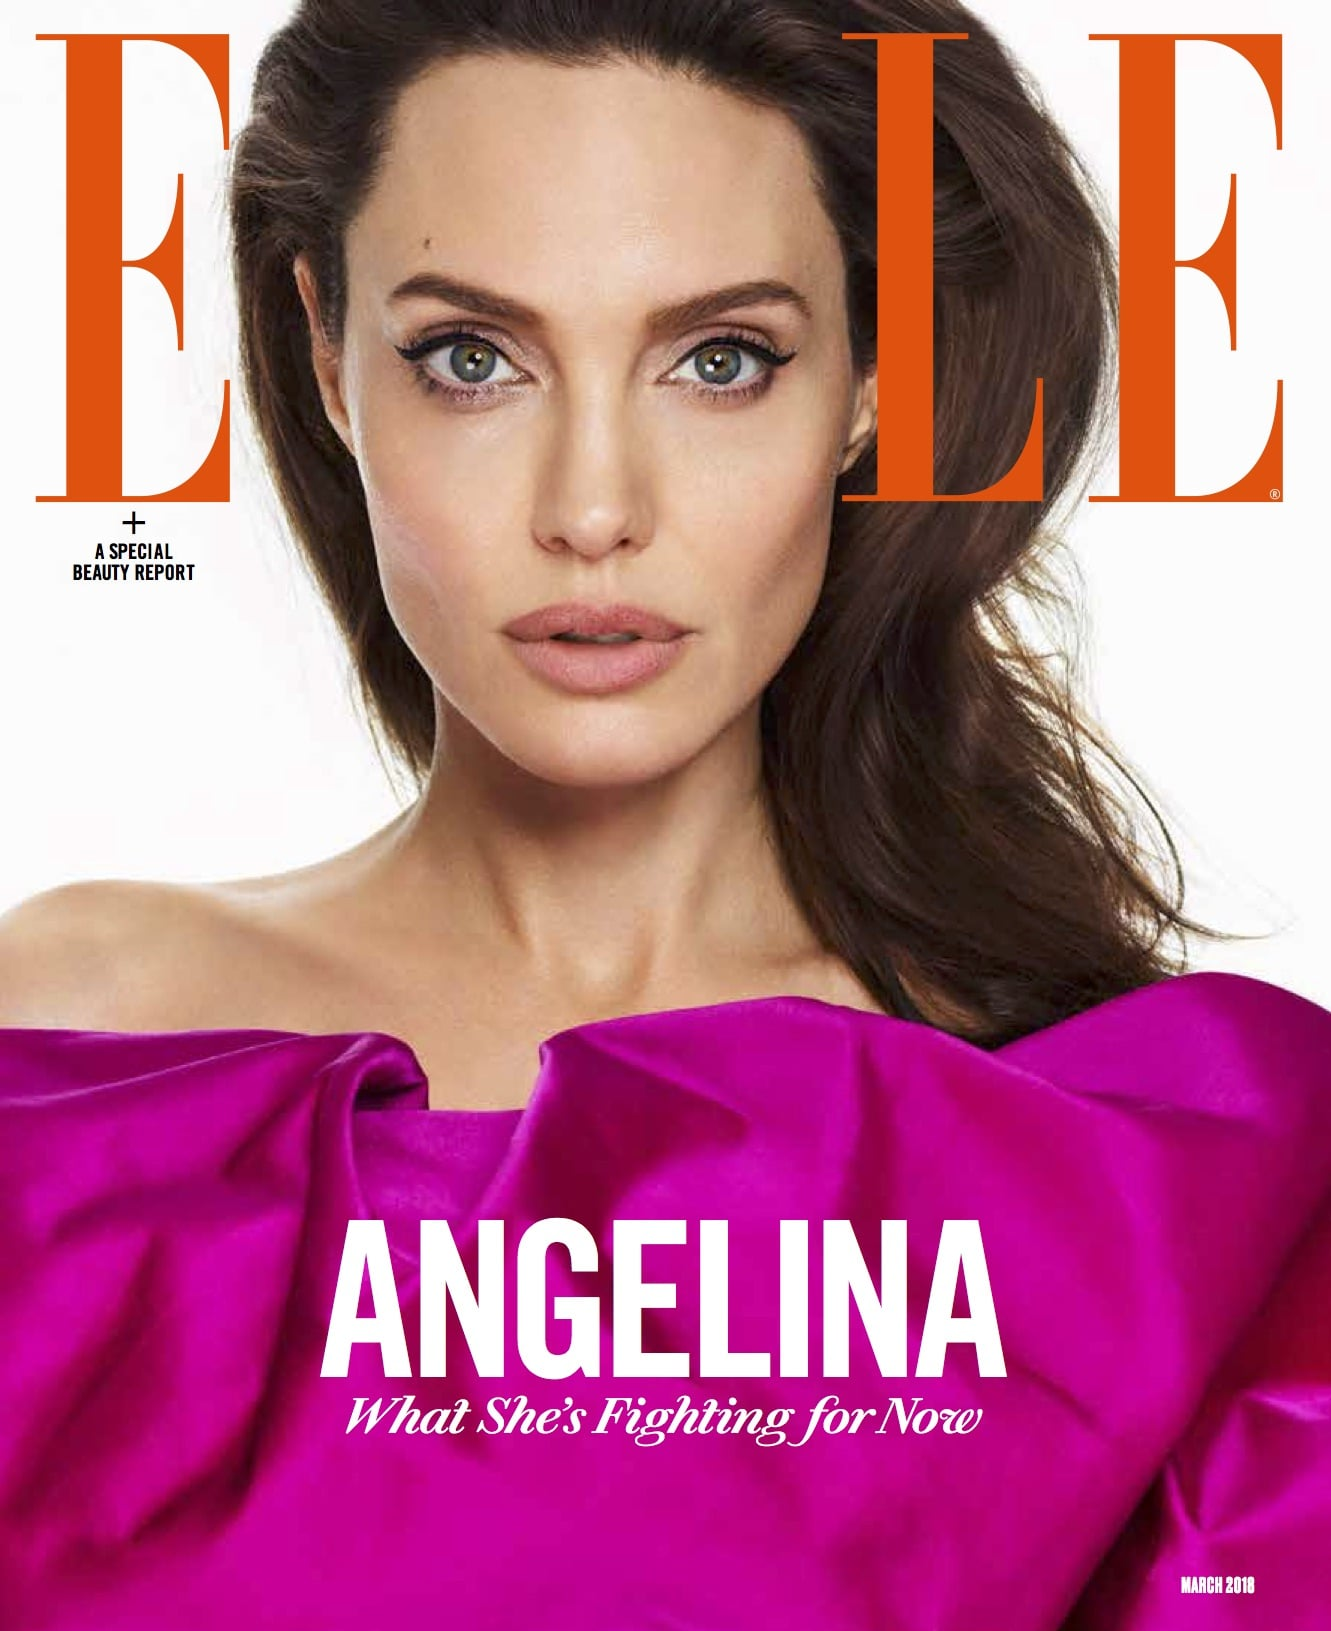 Angelina Jolie Quotes About Her Daughters Elle March 2018